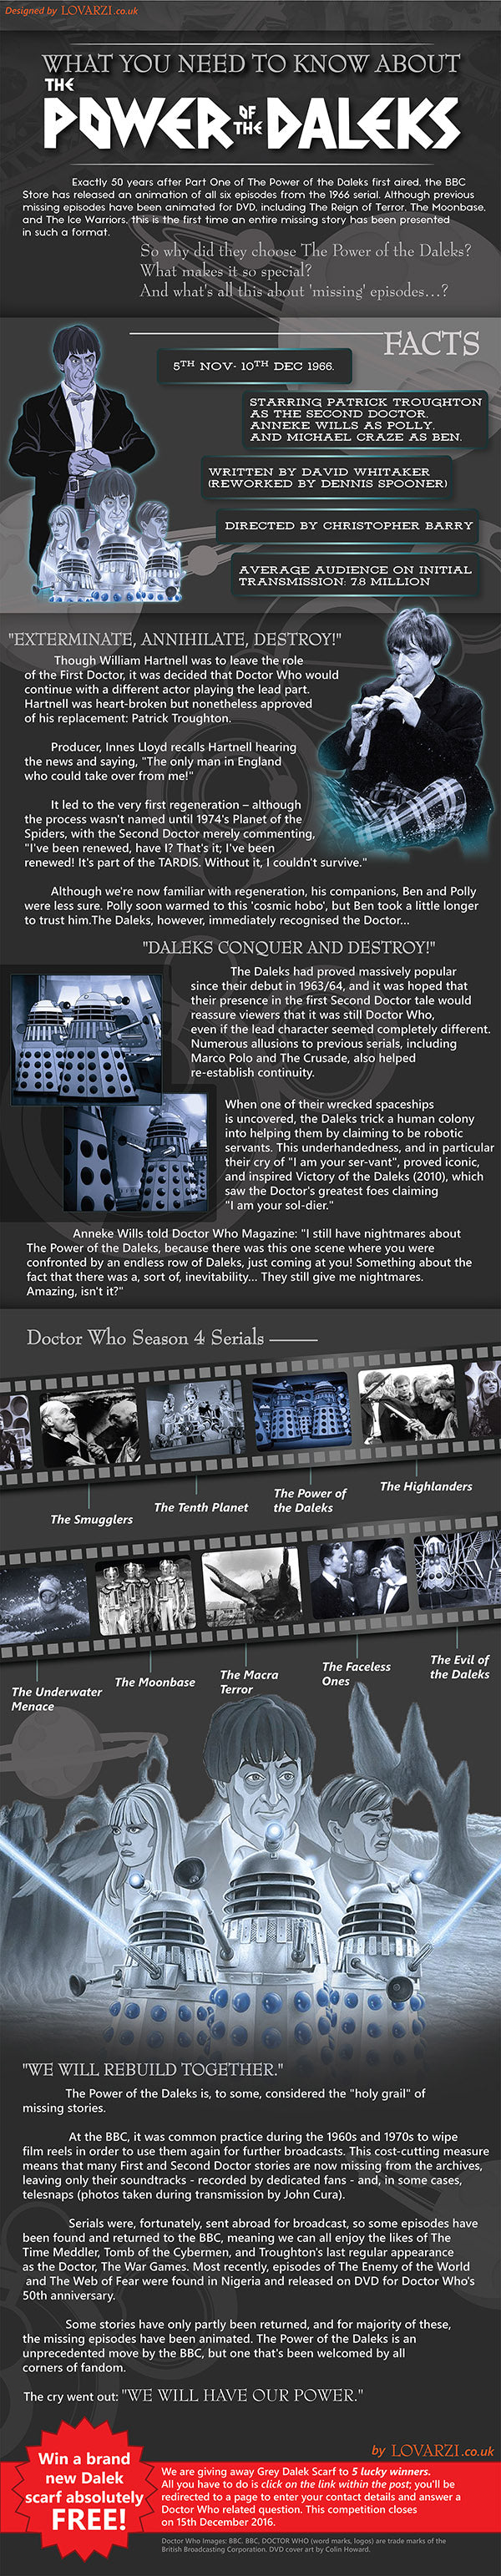 The Power of The Daleks - Free Scarf Offer